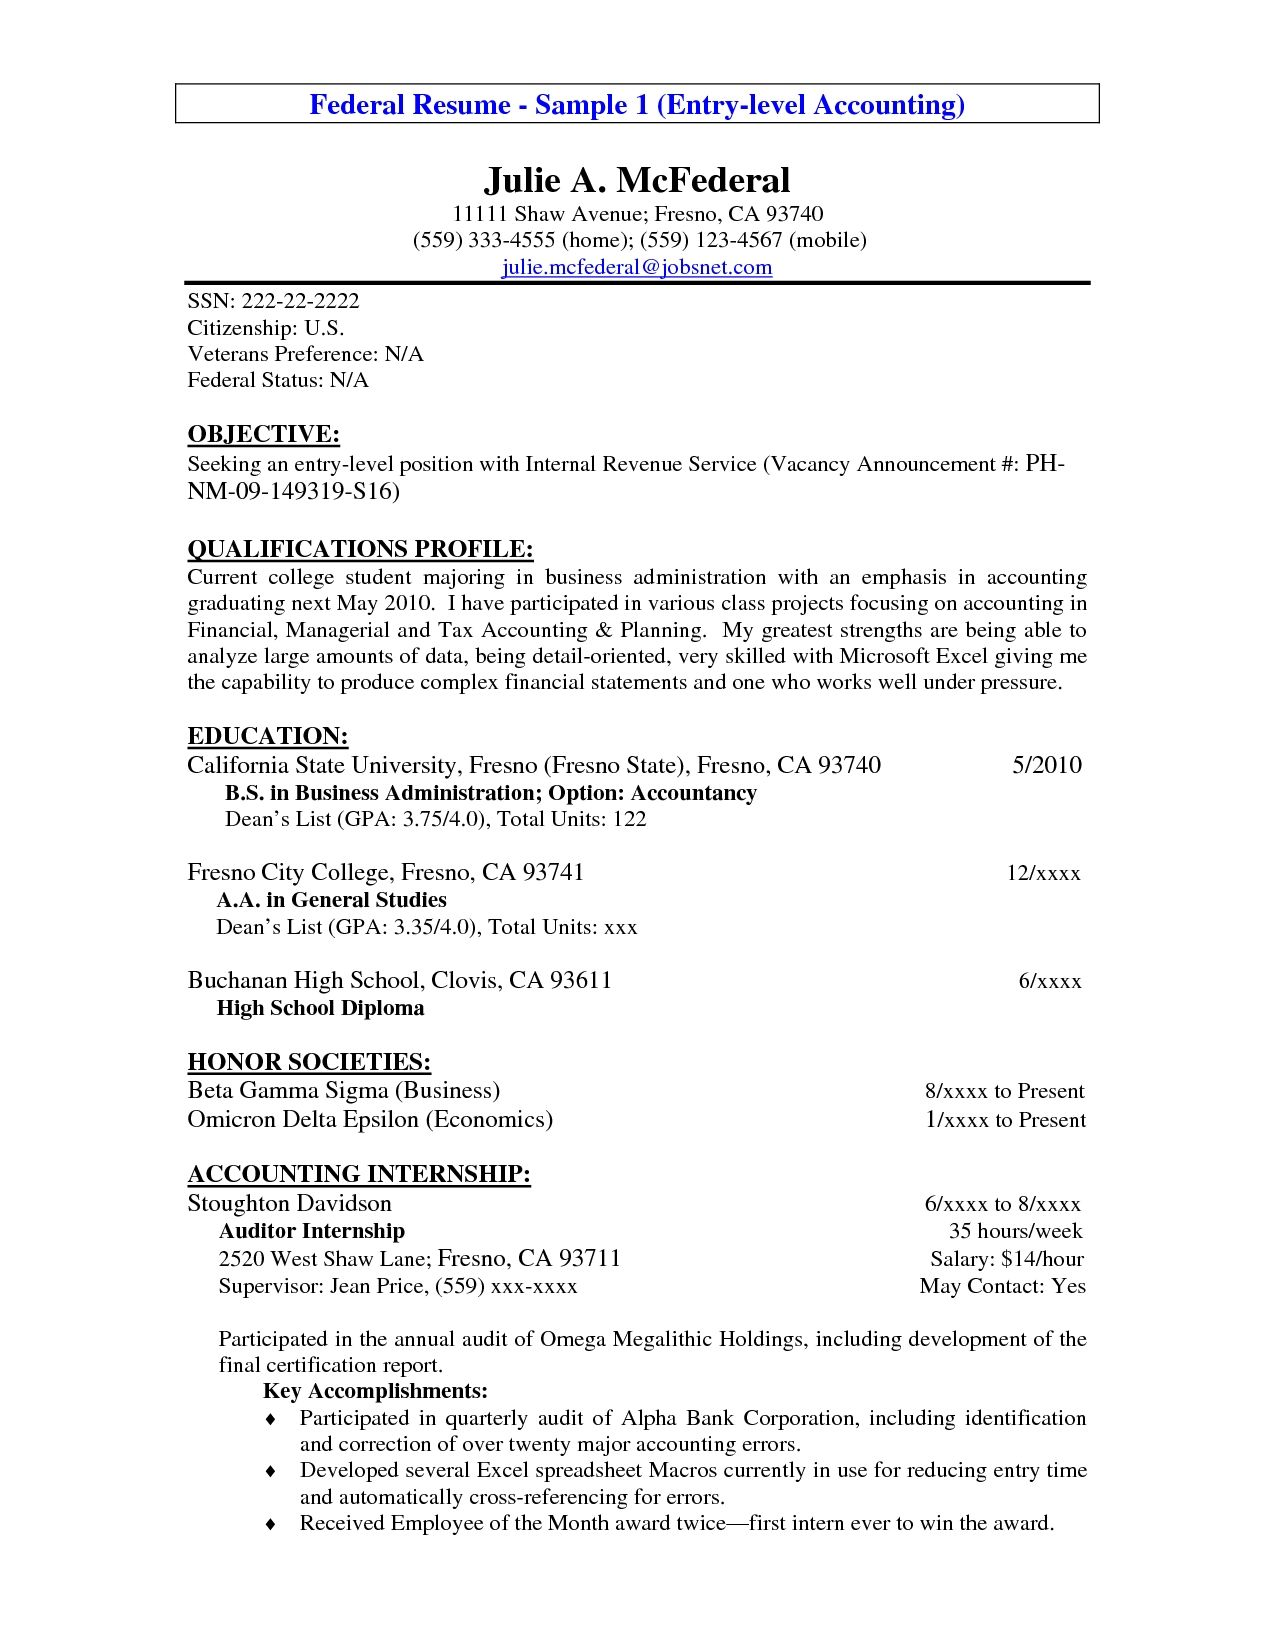 entry level resume example entry level accounting resume sample gallery photos - Entry Level Accountant Resume